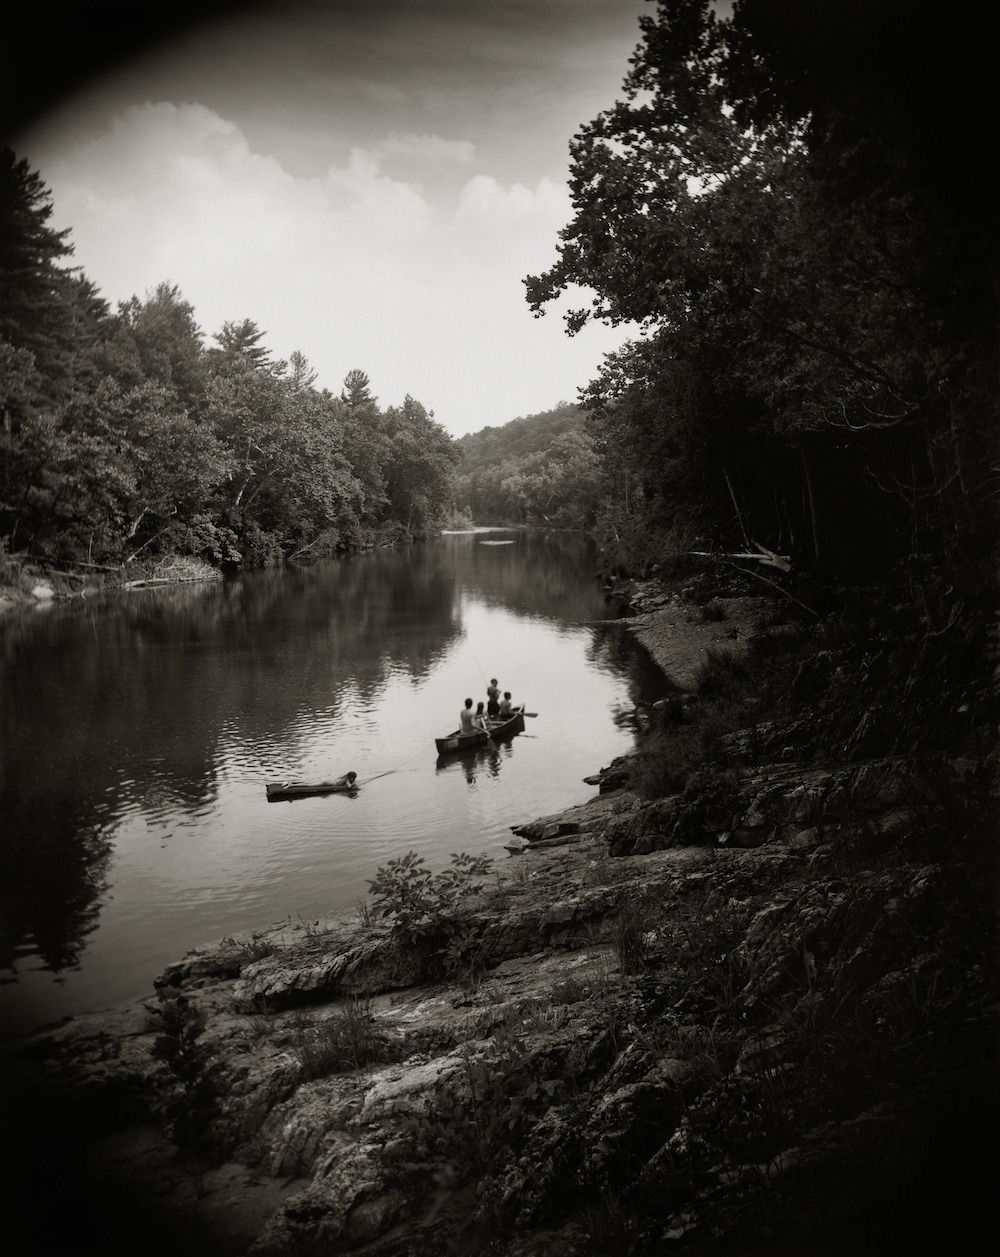 Sally Mann (American, born 1951) On the Maury, 1992, gelatin silver print, Private collection.